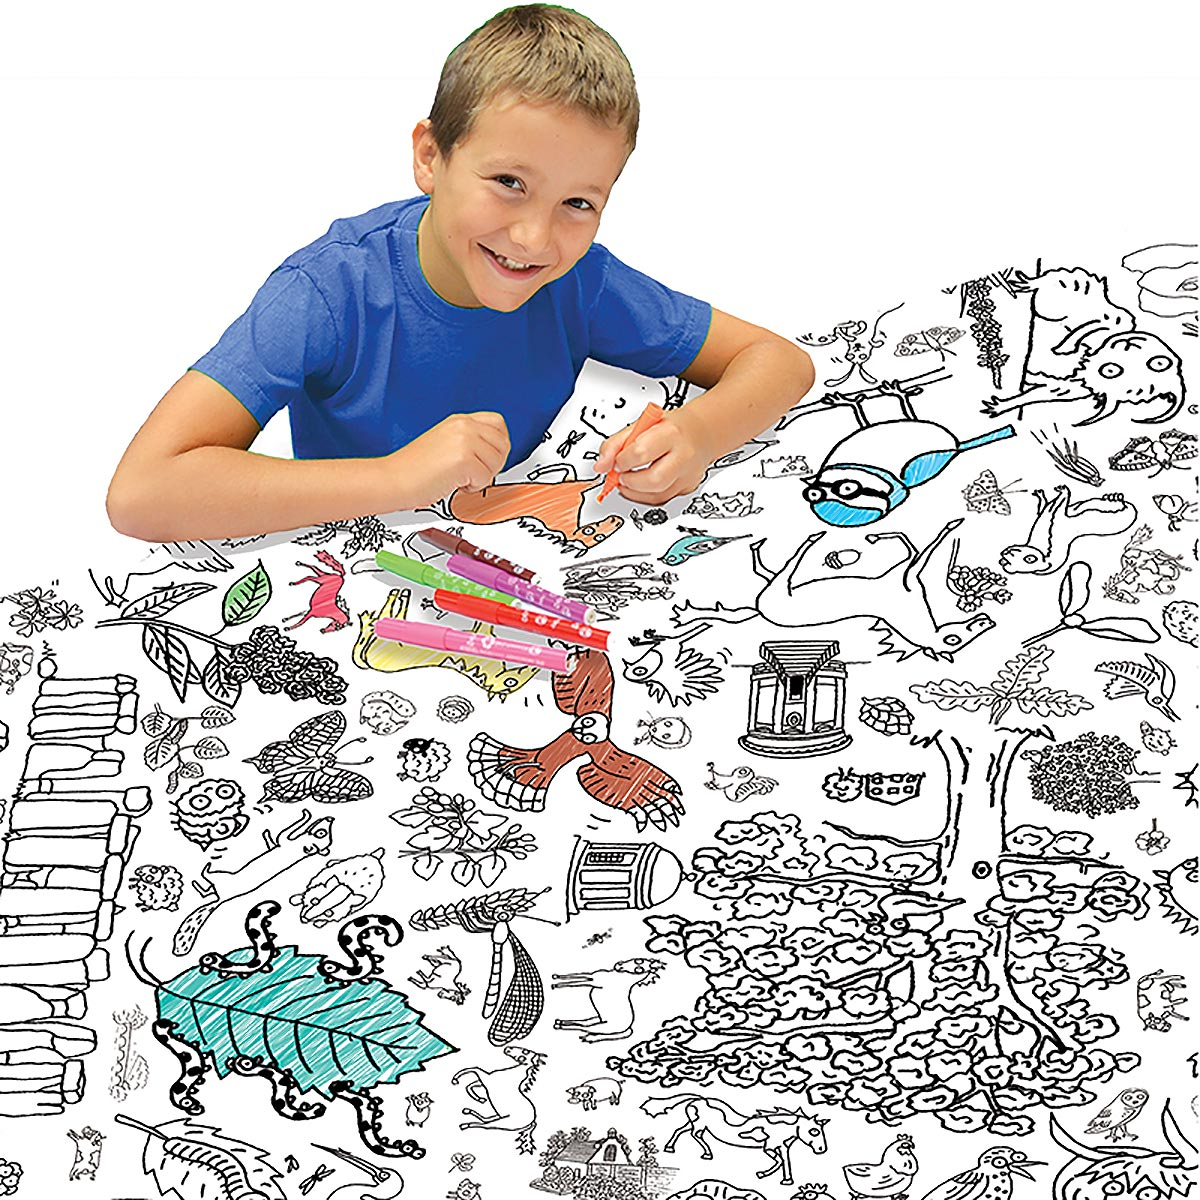 boy at table colouring in tablecloth